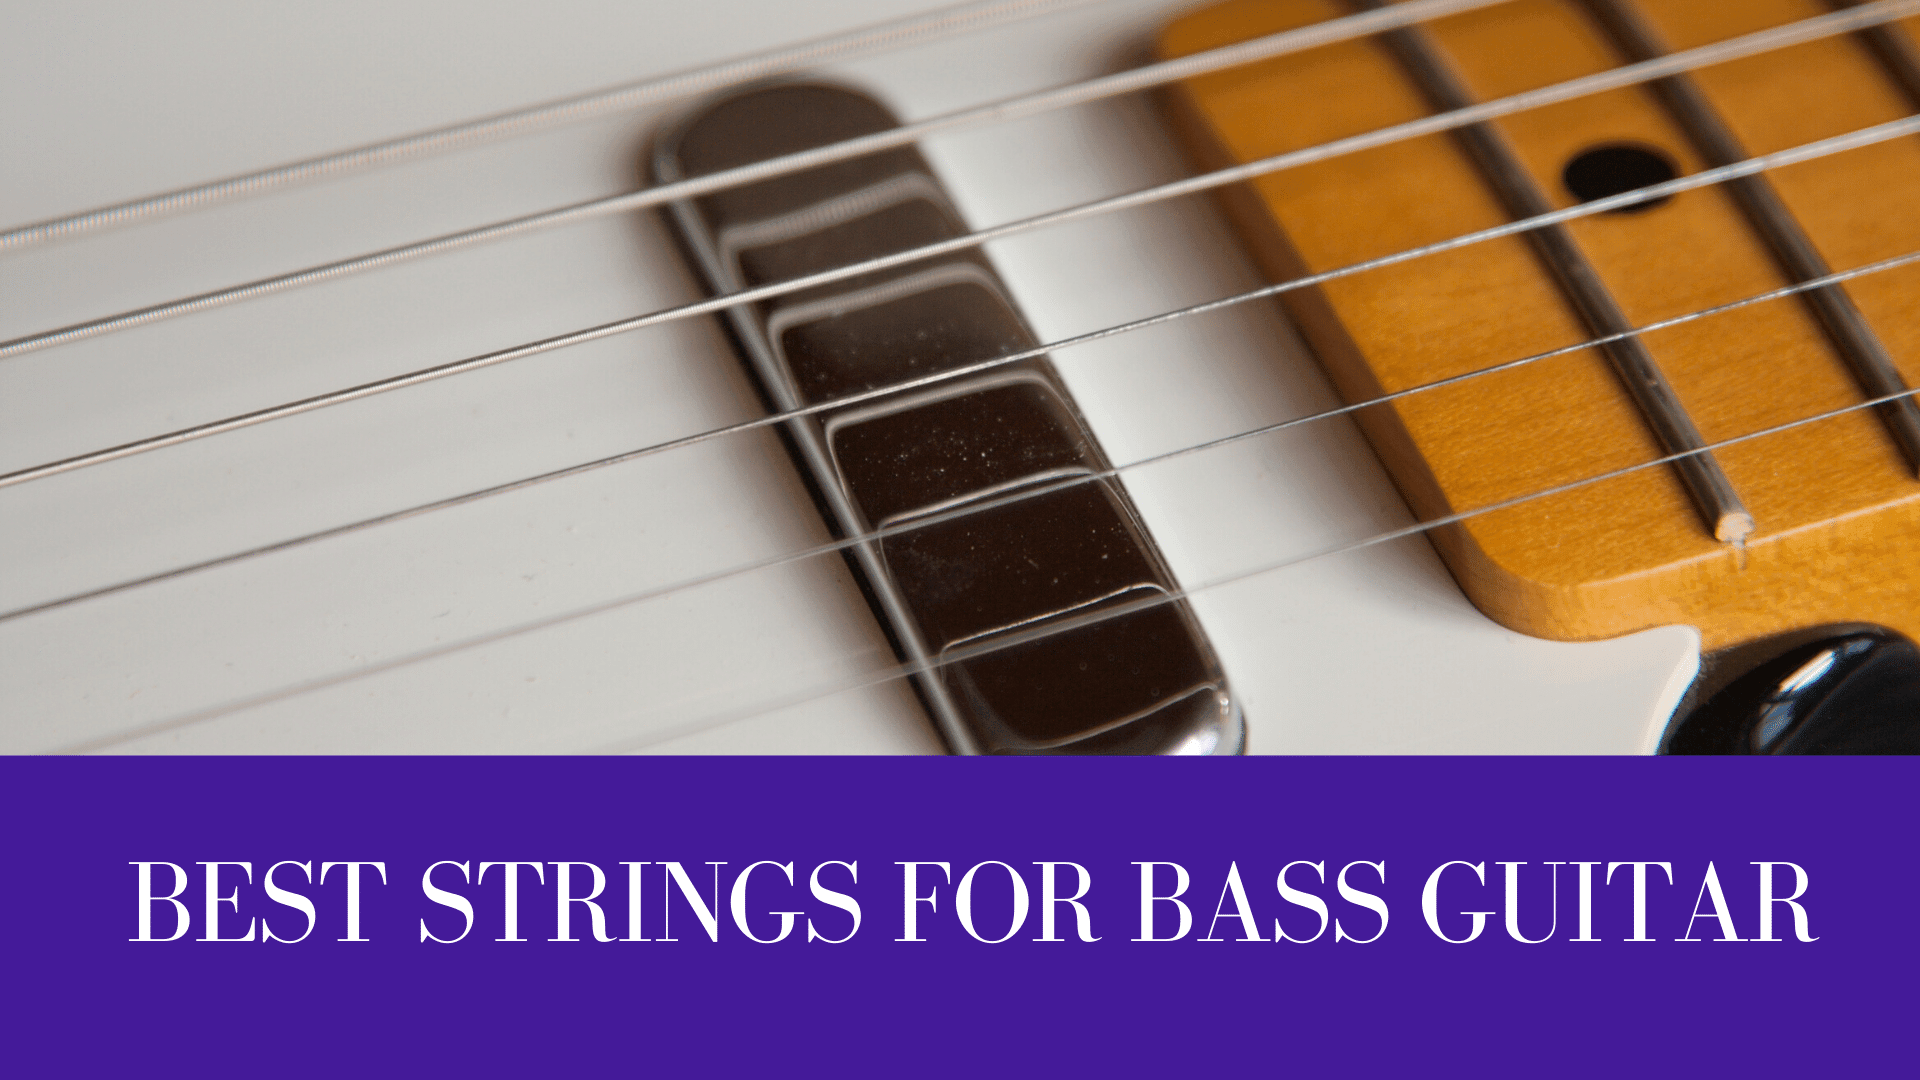 BEST STRINGS FOR BASS GUITAR